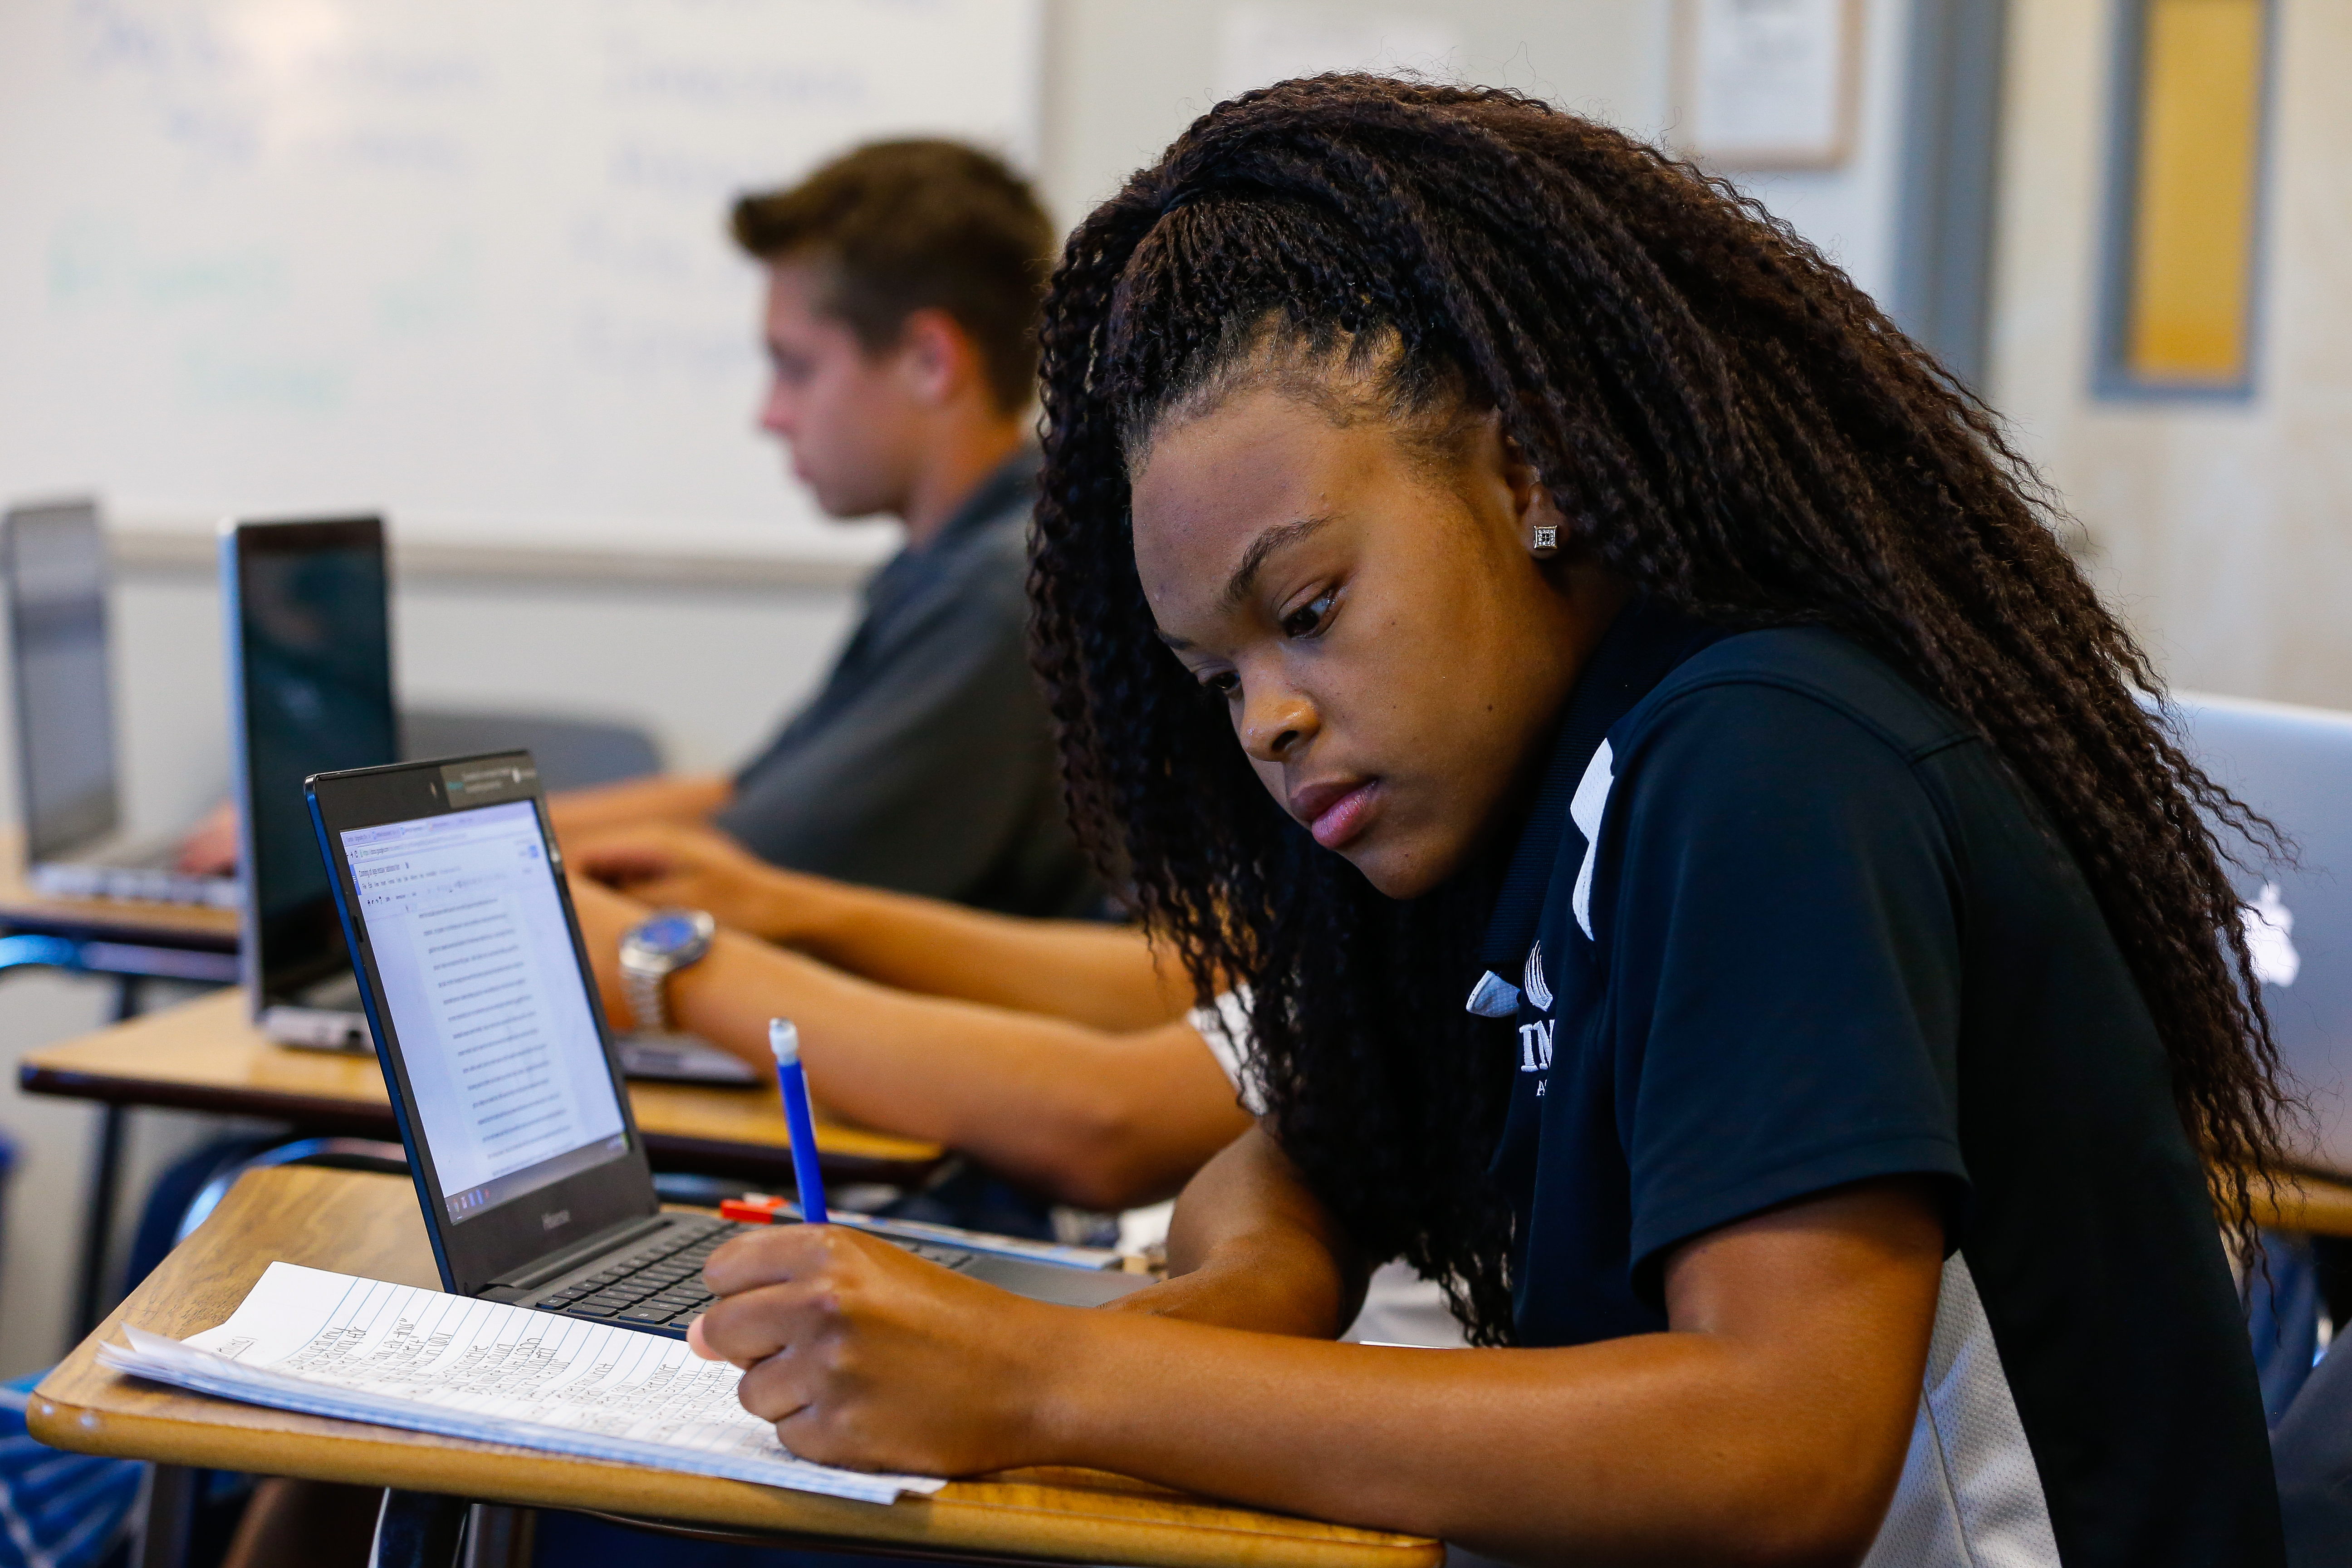 improving sat essay scores Unlike the old sat essay, which has a single score, the new sat essay will contain three scores, one for reading, one for analysis, and one for writing two graders will score the essay and these scores will be added up.